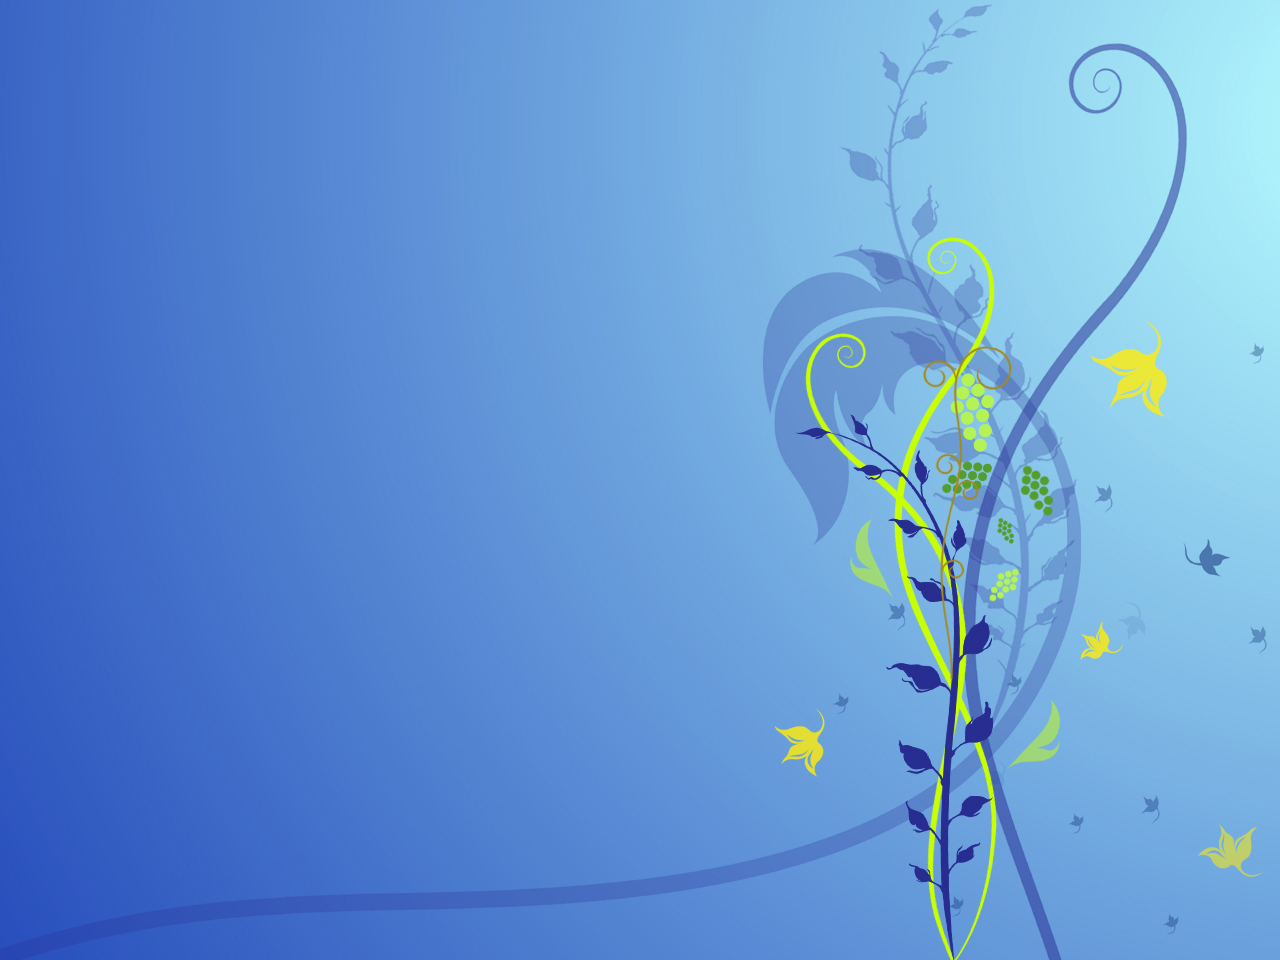 Blue Flower Abstract 276.32 Kb